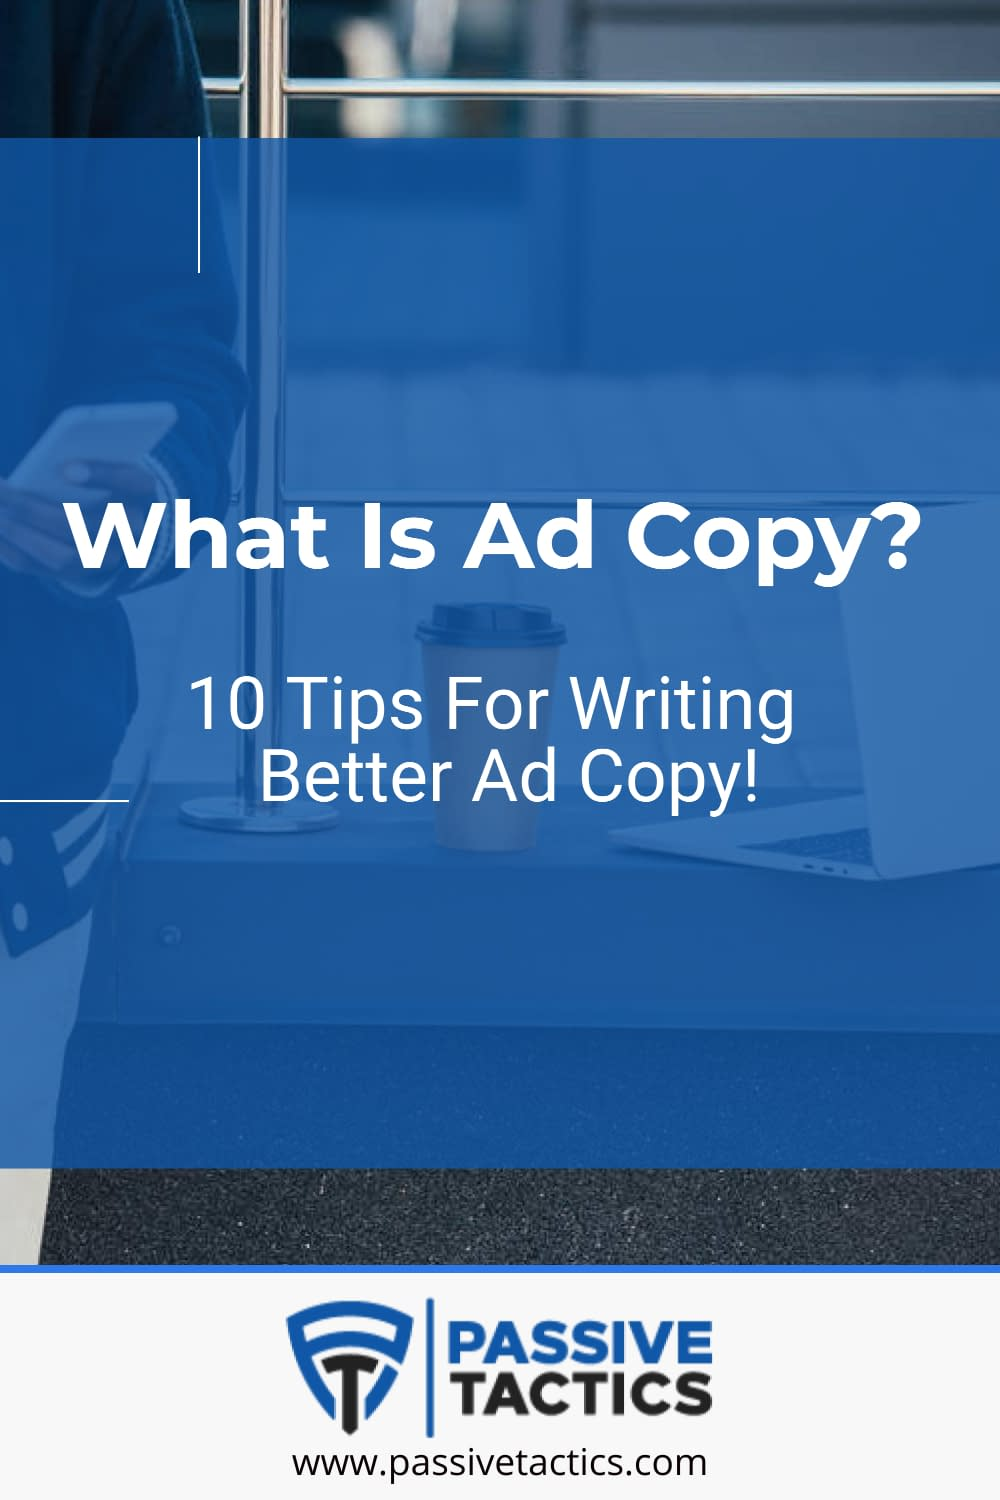 What Is Ad Copy? 10 Tips For Writing A Better Ad Copy!